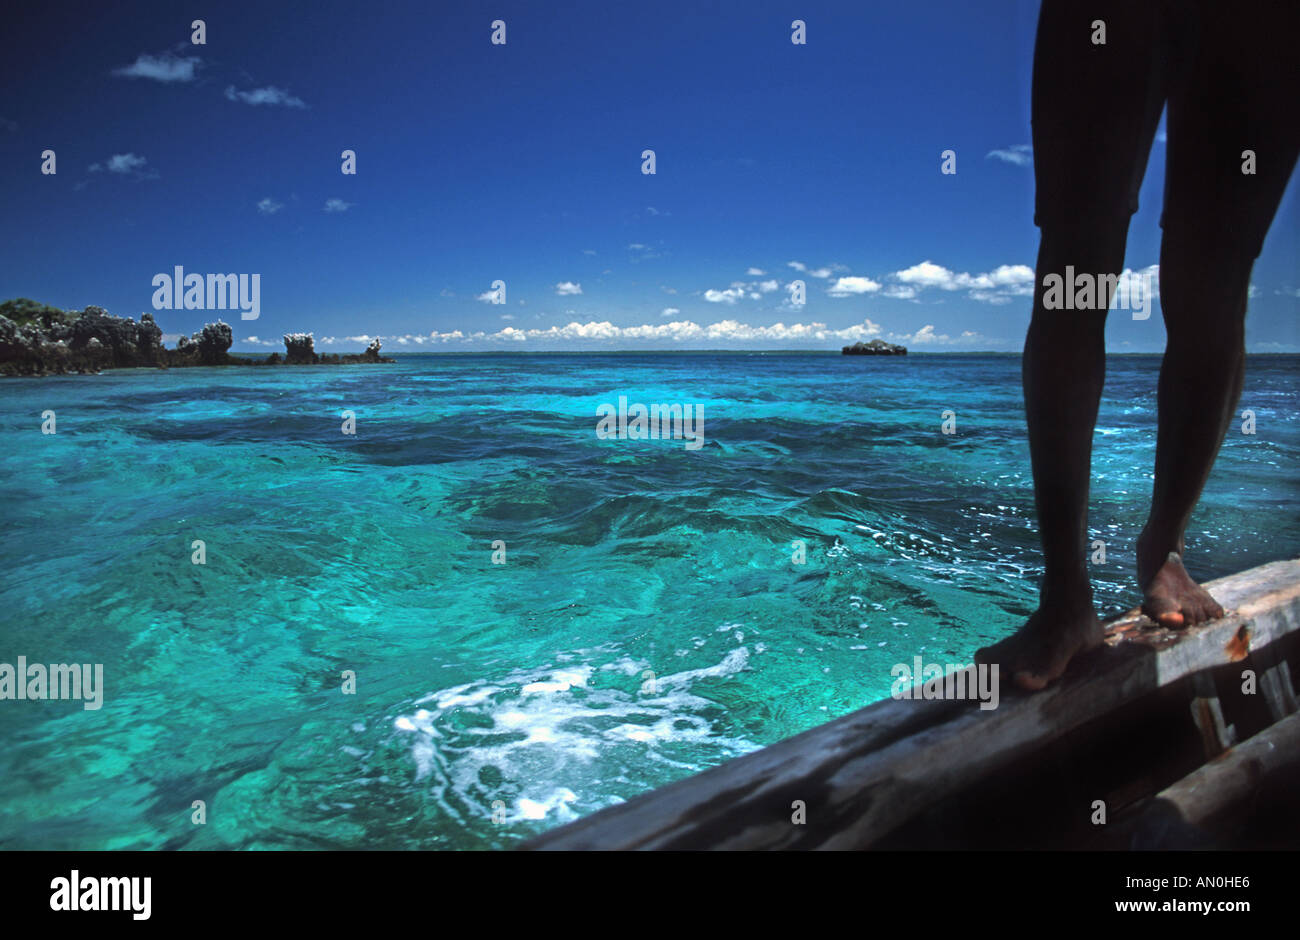 Crystal clear waters between Mafia Island and Chole island en route to the ruins of Kua on Joani island S of Zanzibar Tanzania - Stock Image